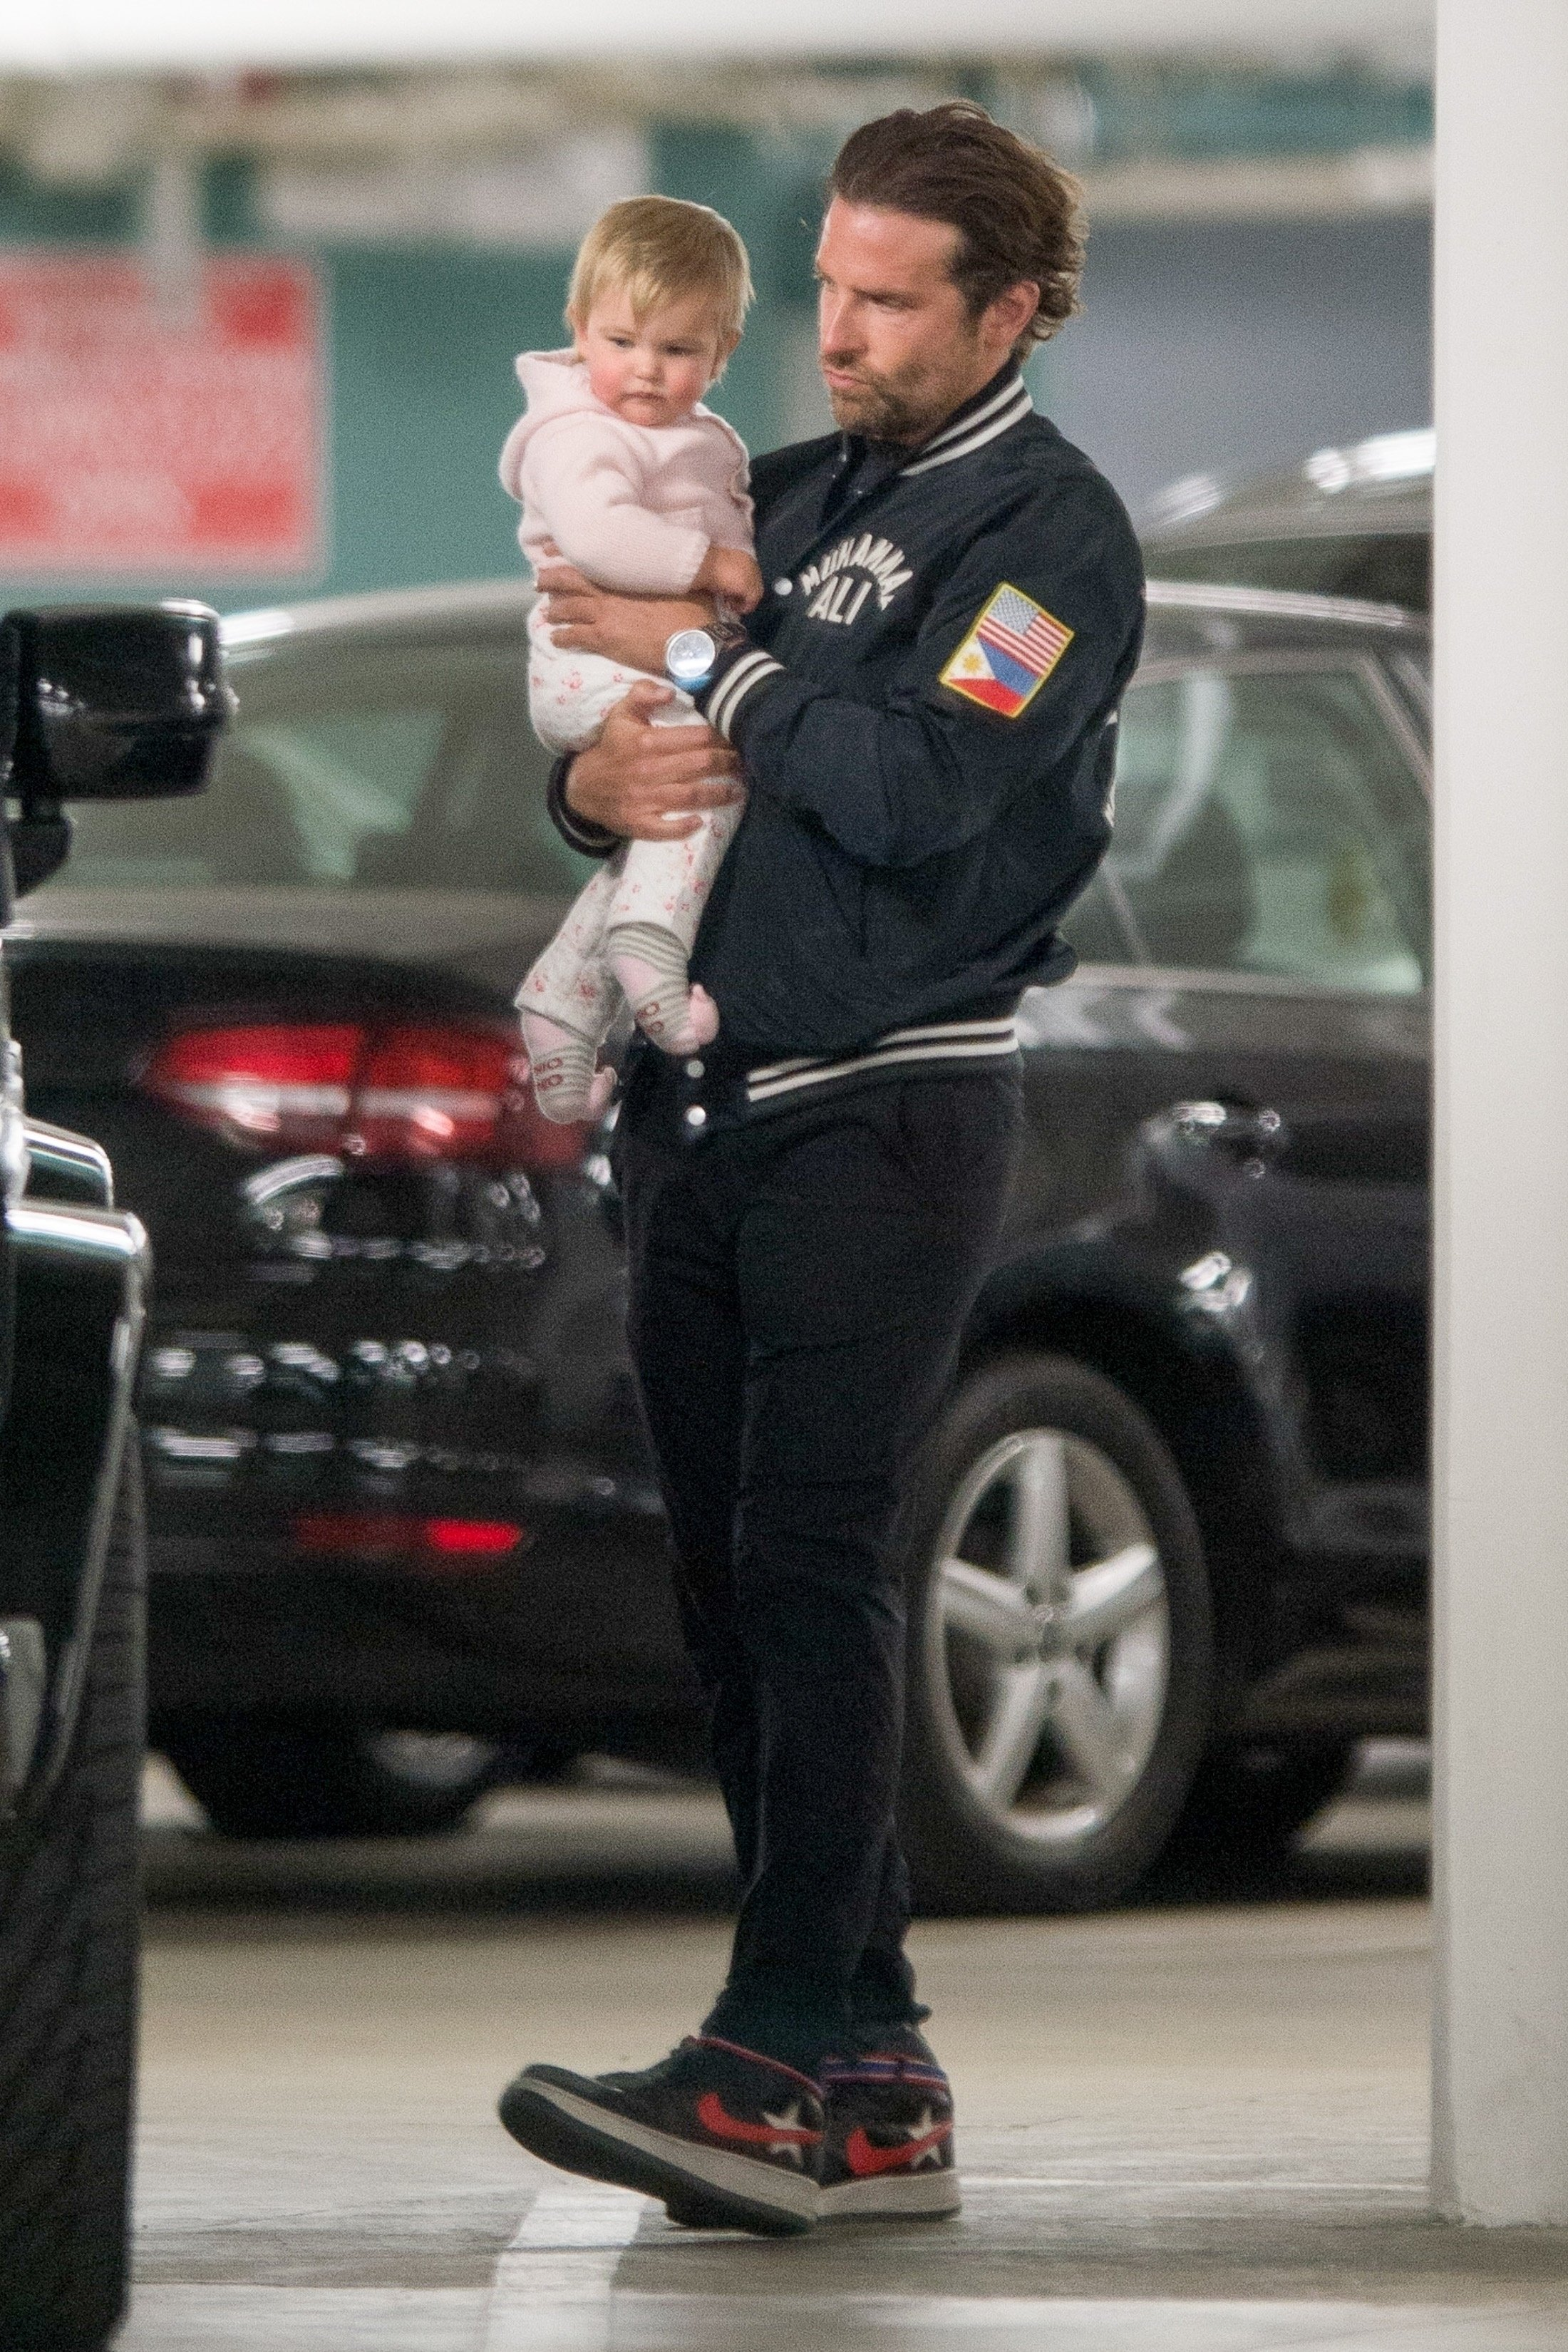 ** RIGHTS: WORLDWIDE EXCEPT IN ITALY ** Century City, CA  - *EXCLUSIVE*  - Bradley Cooper and Irina Shayk have a casual lunch with their daughter in Century City, CA. The family are seen heading to their car after grabbing some groceries.  Pictured: Lea De Seine Shayk Cooper, Bradley Cooper    *UK Clients - Pictures Containing Children Please Pixelate Face Prior To Publication*, Image: 364067994, License: Rights-managed, Restrictions: , Model Release: no, Credit line: Profimedia, AKM-GSI